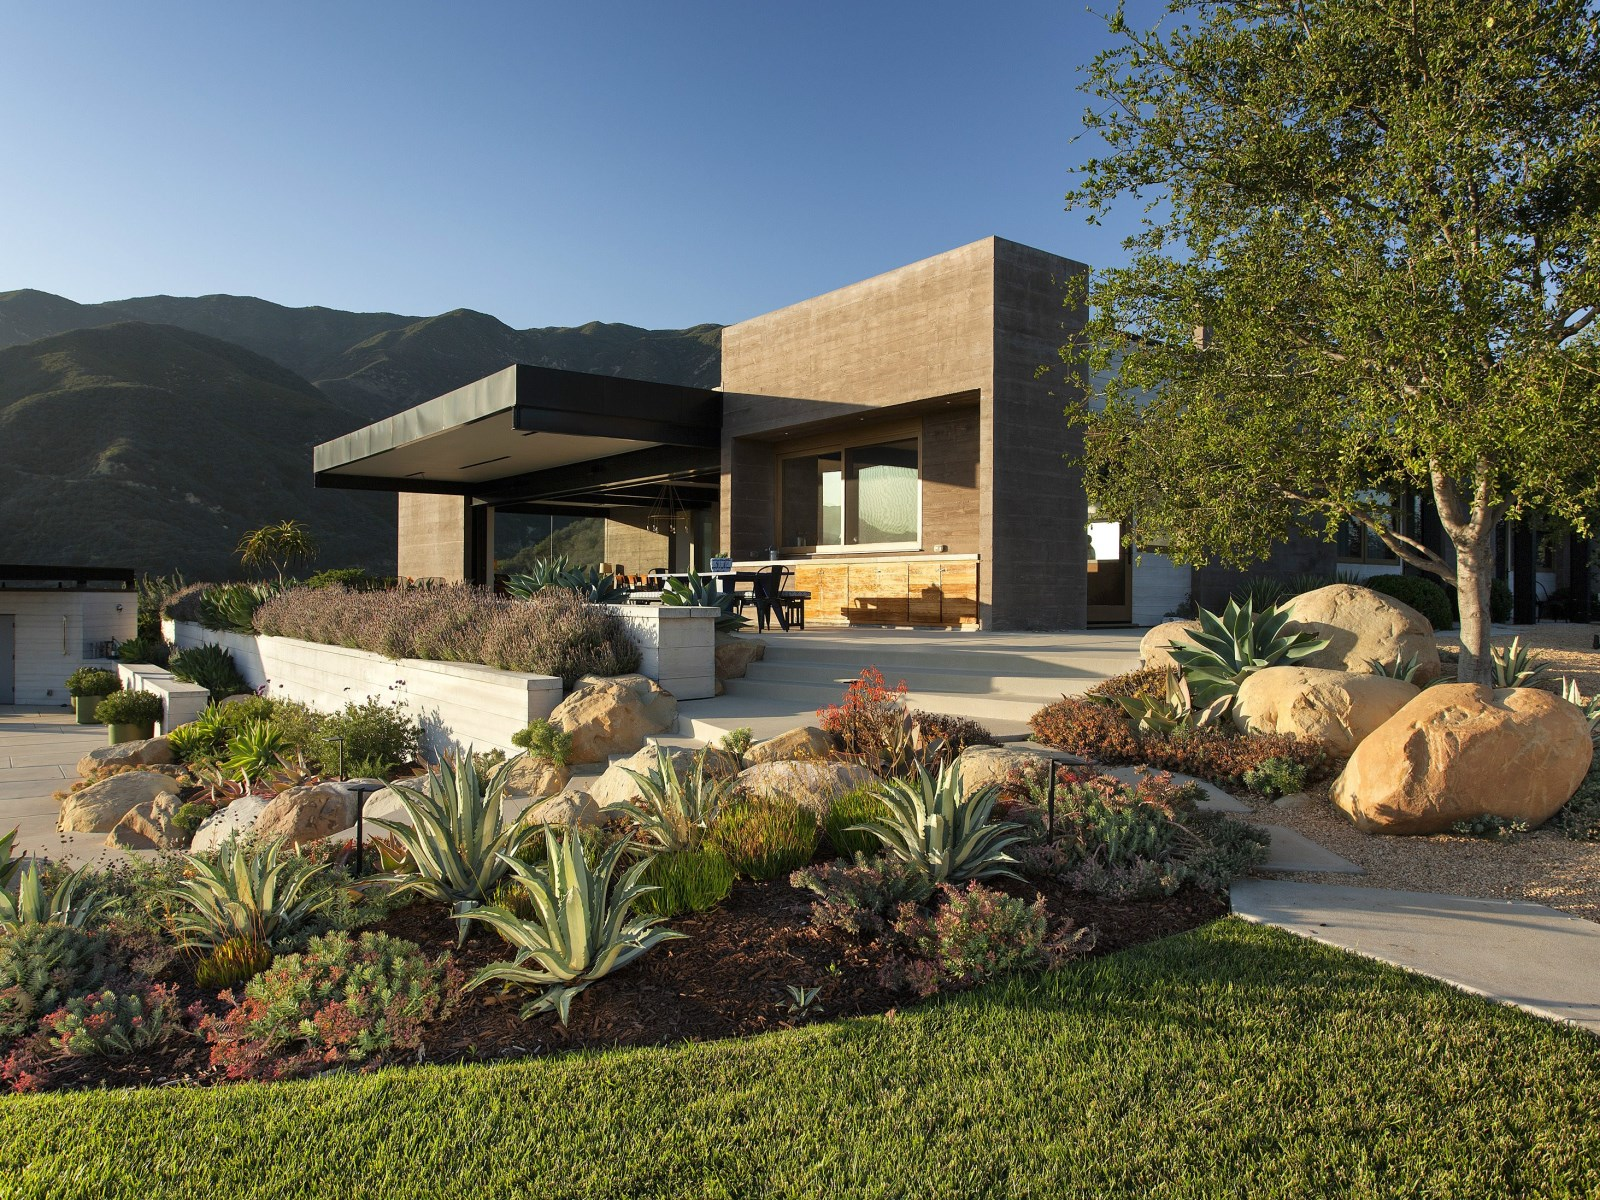 Roof Design Ideas: A Modern Architectural Masterpiece In California